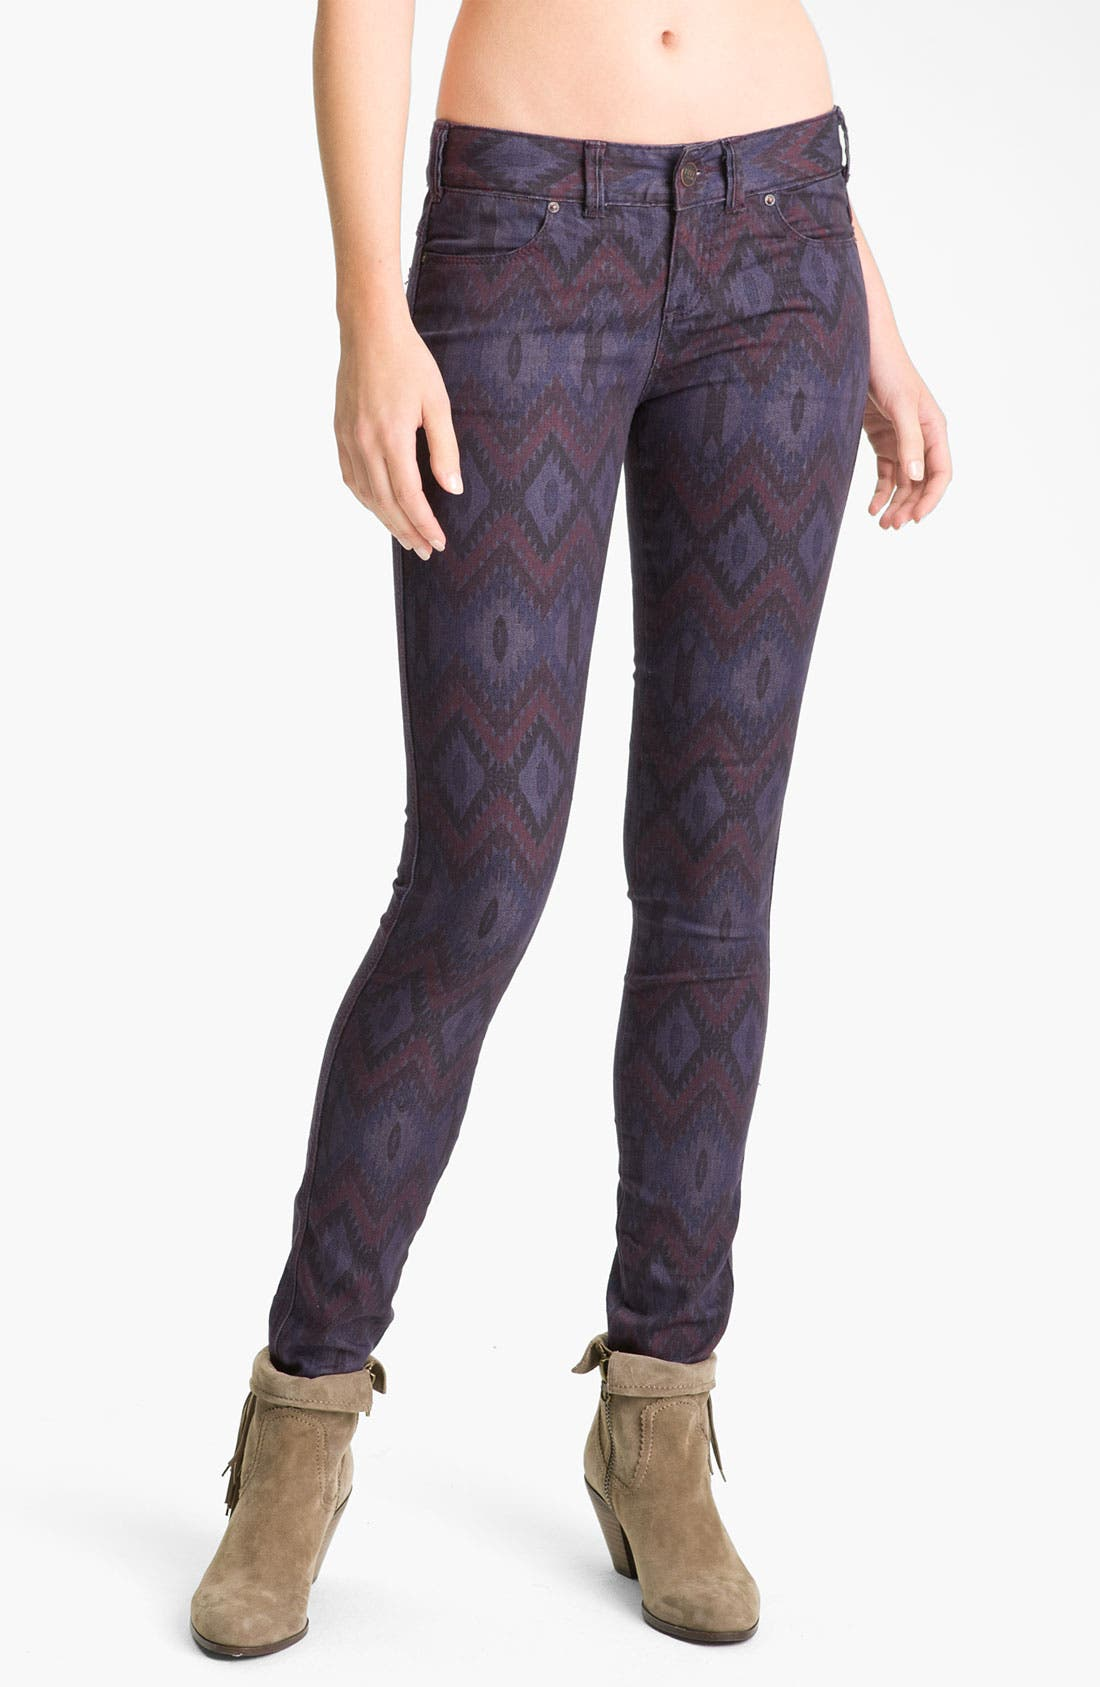 Alternate Image 1 Selected - Free People Ikat Print Skinny Jeans